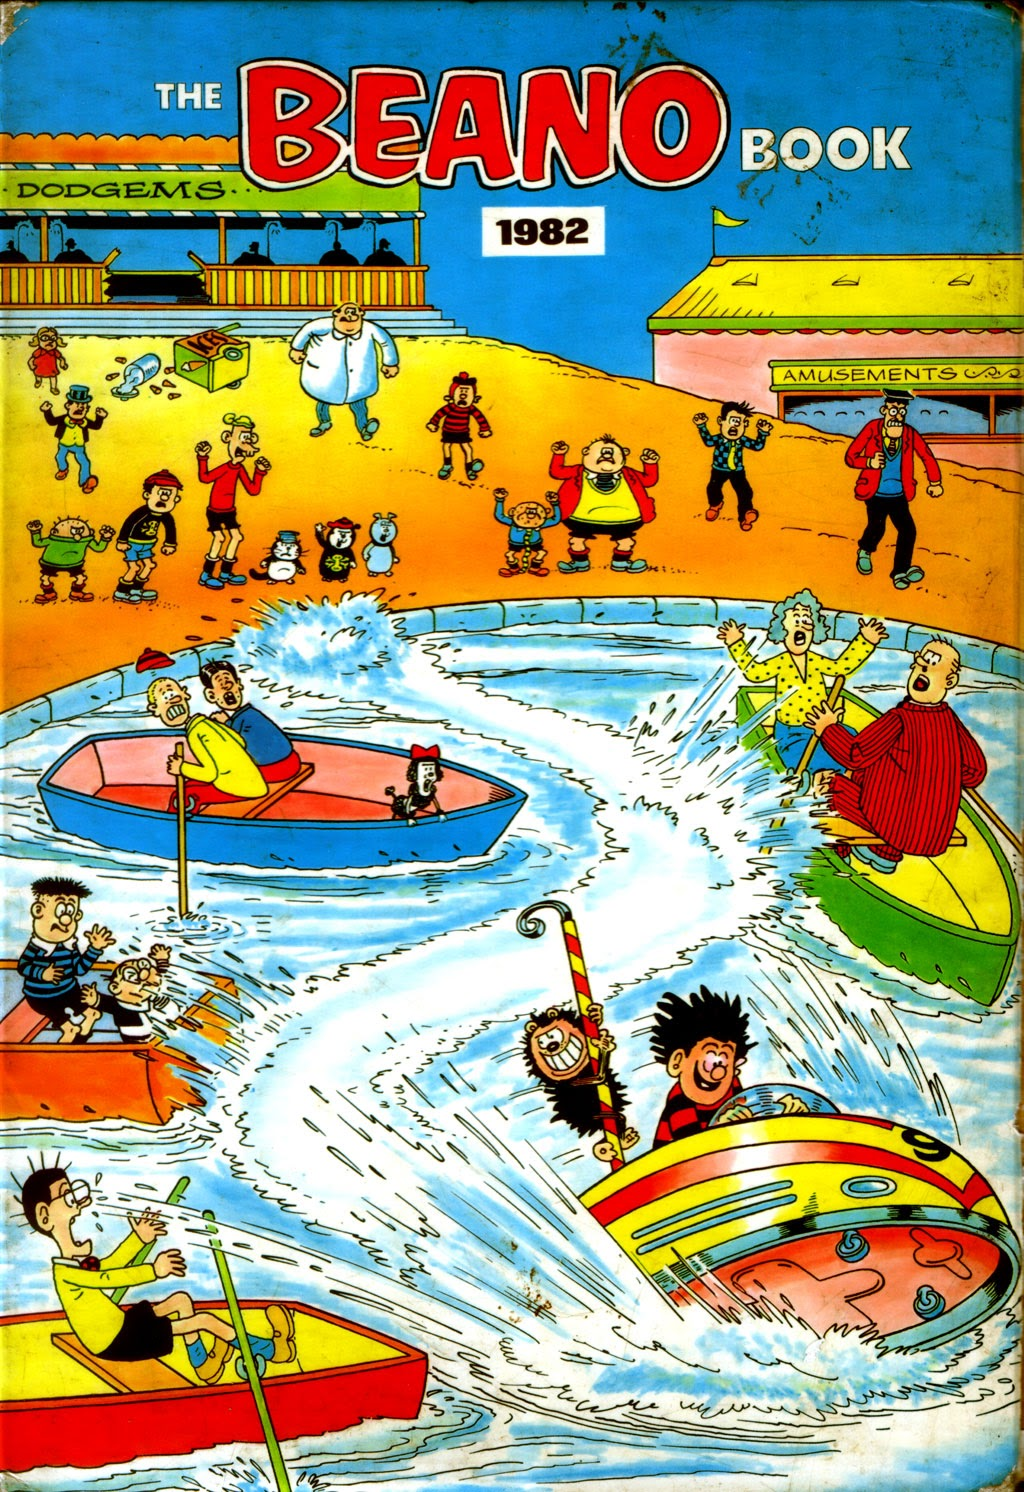 The Beano Book (Annual) 1982 Page 138